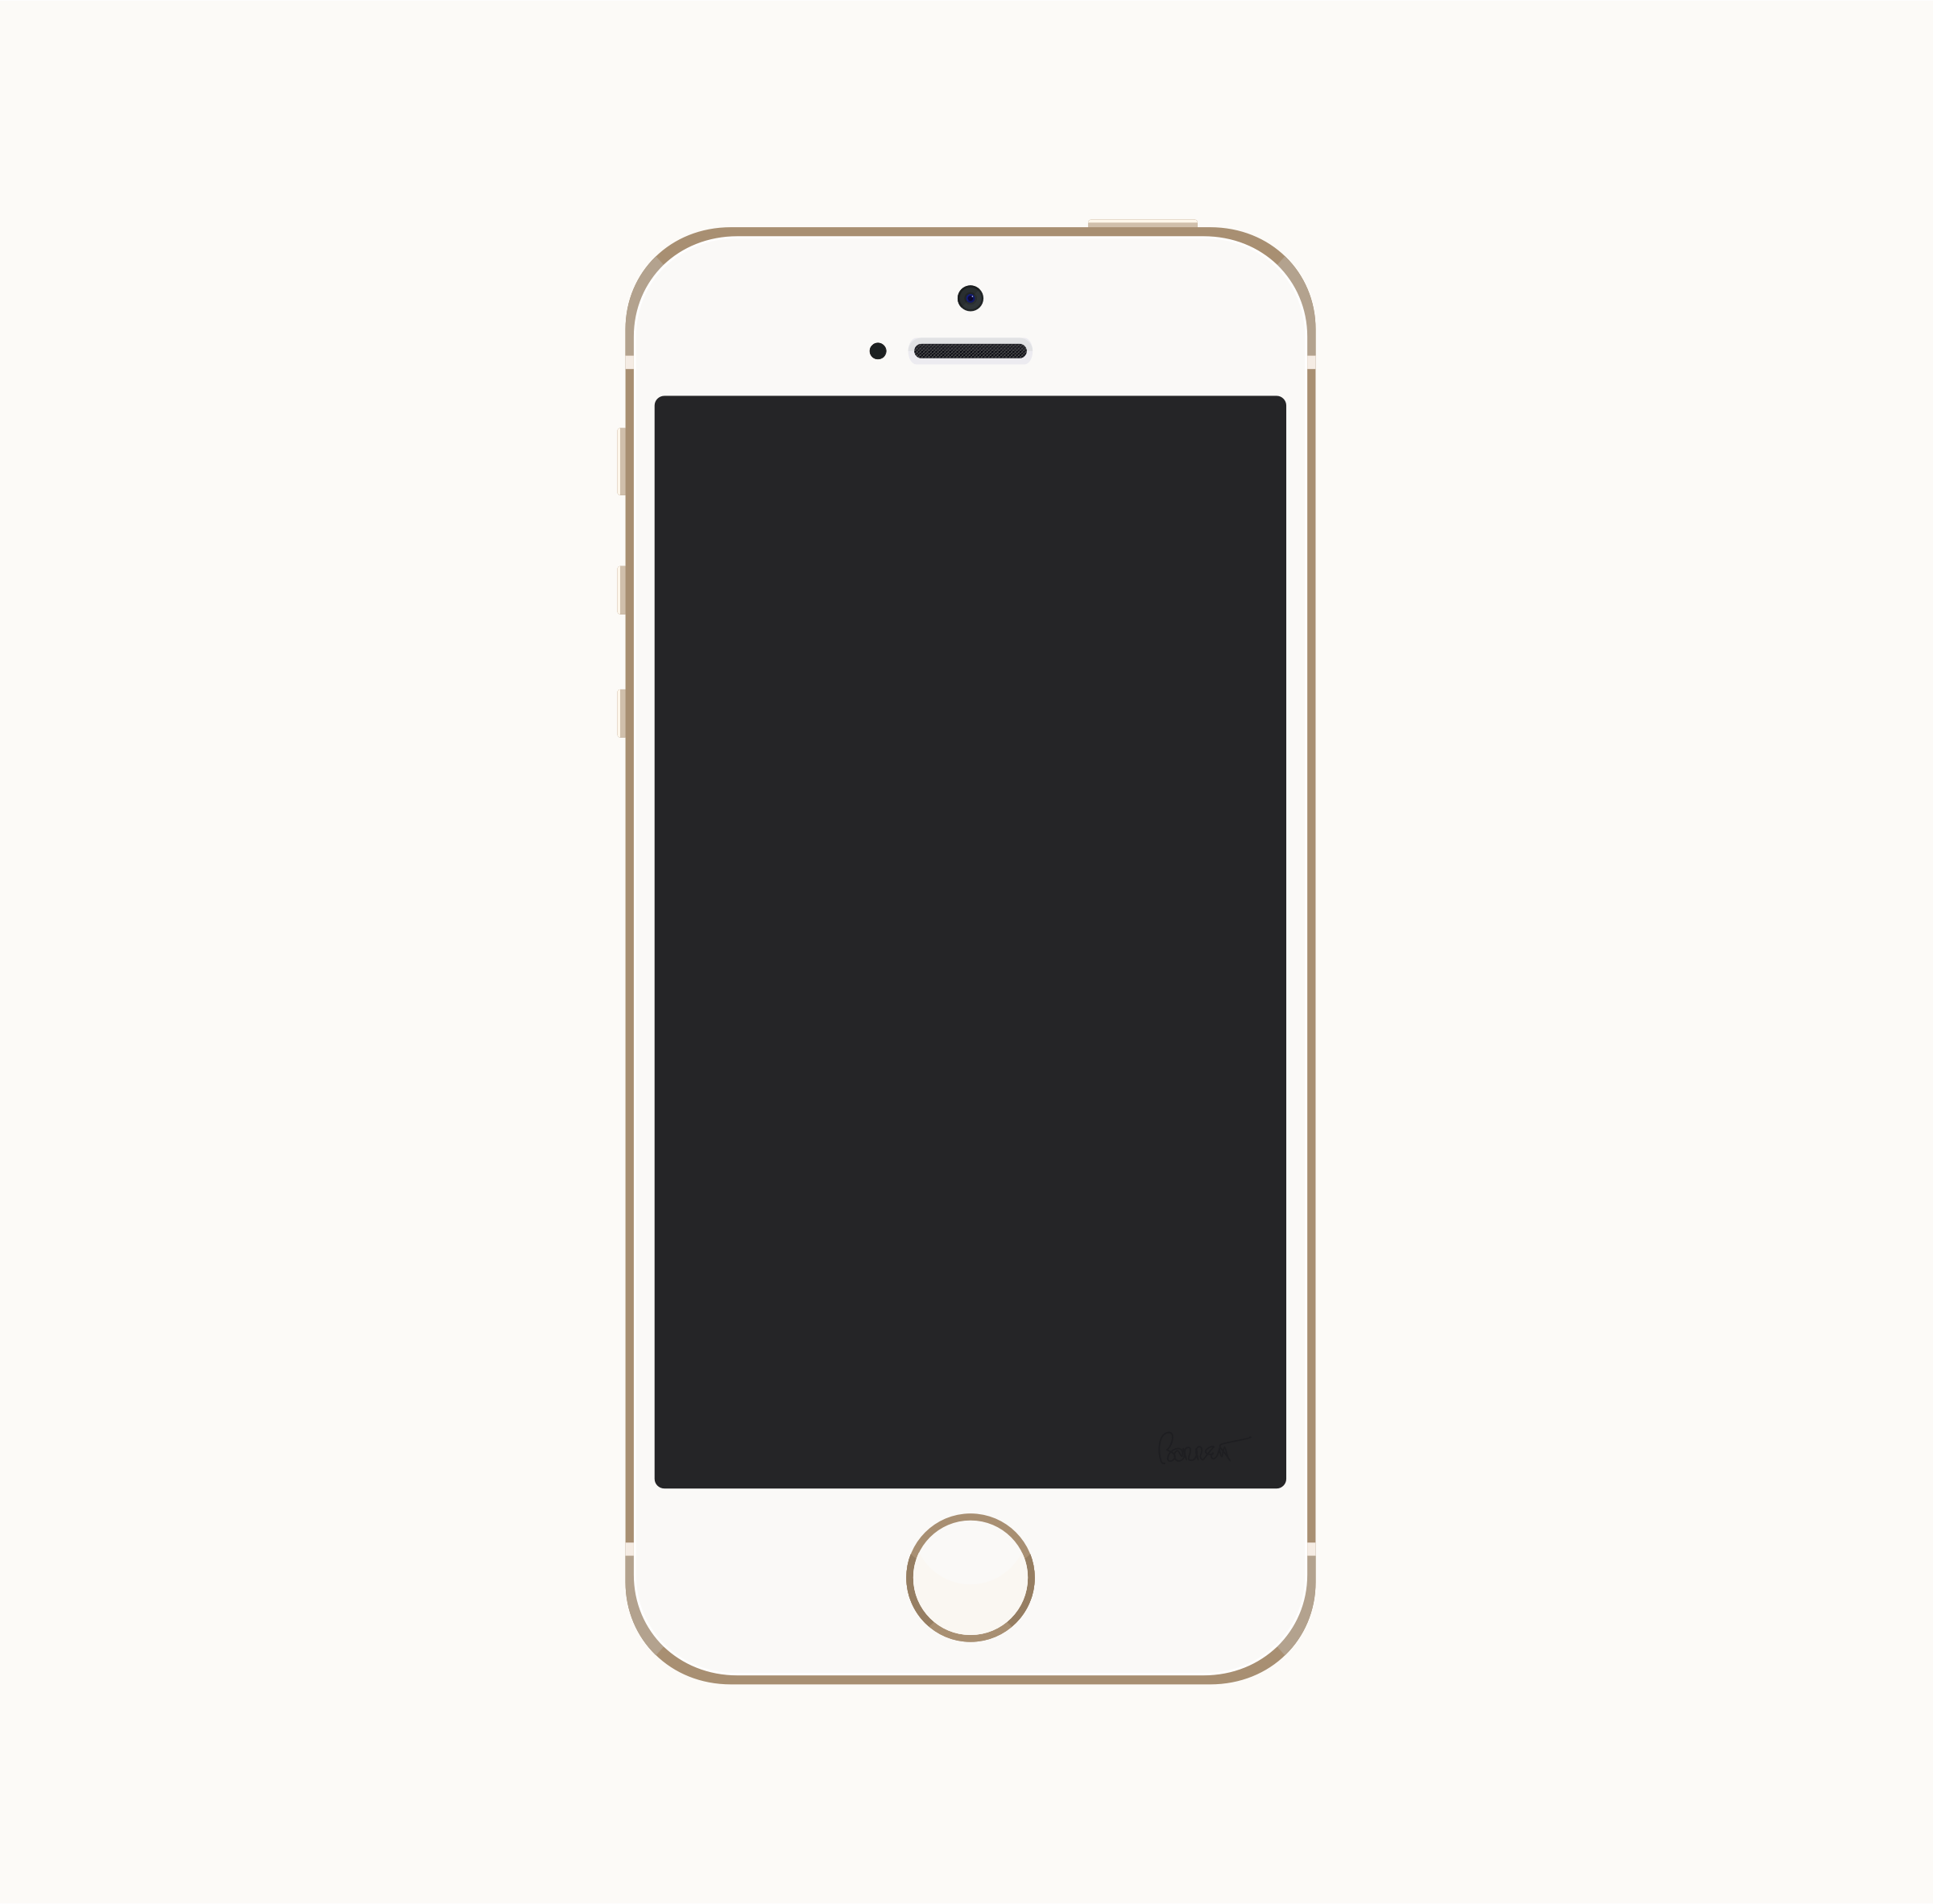 Iphone clipart gold image free library 32+ Iphone Clip Art | ClipartLook image free library